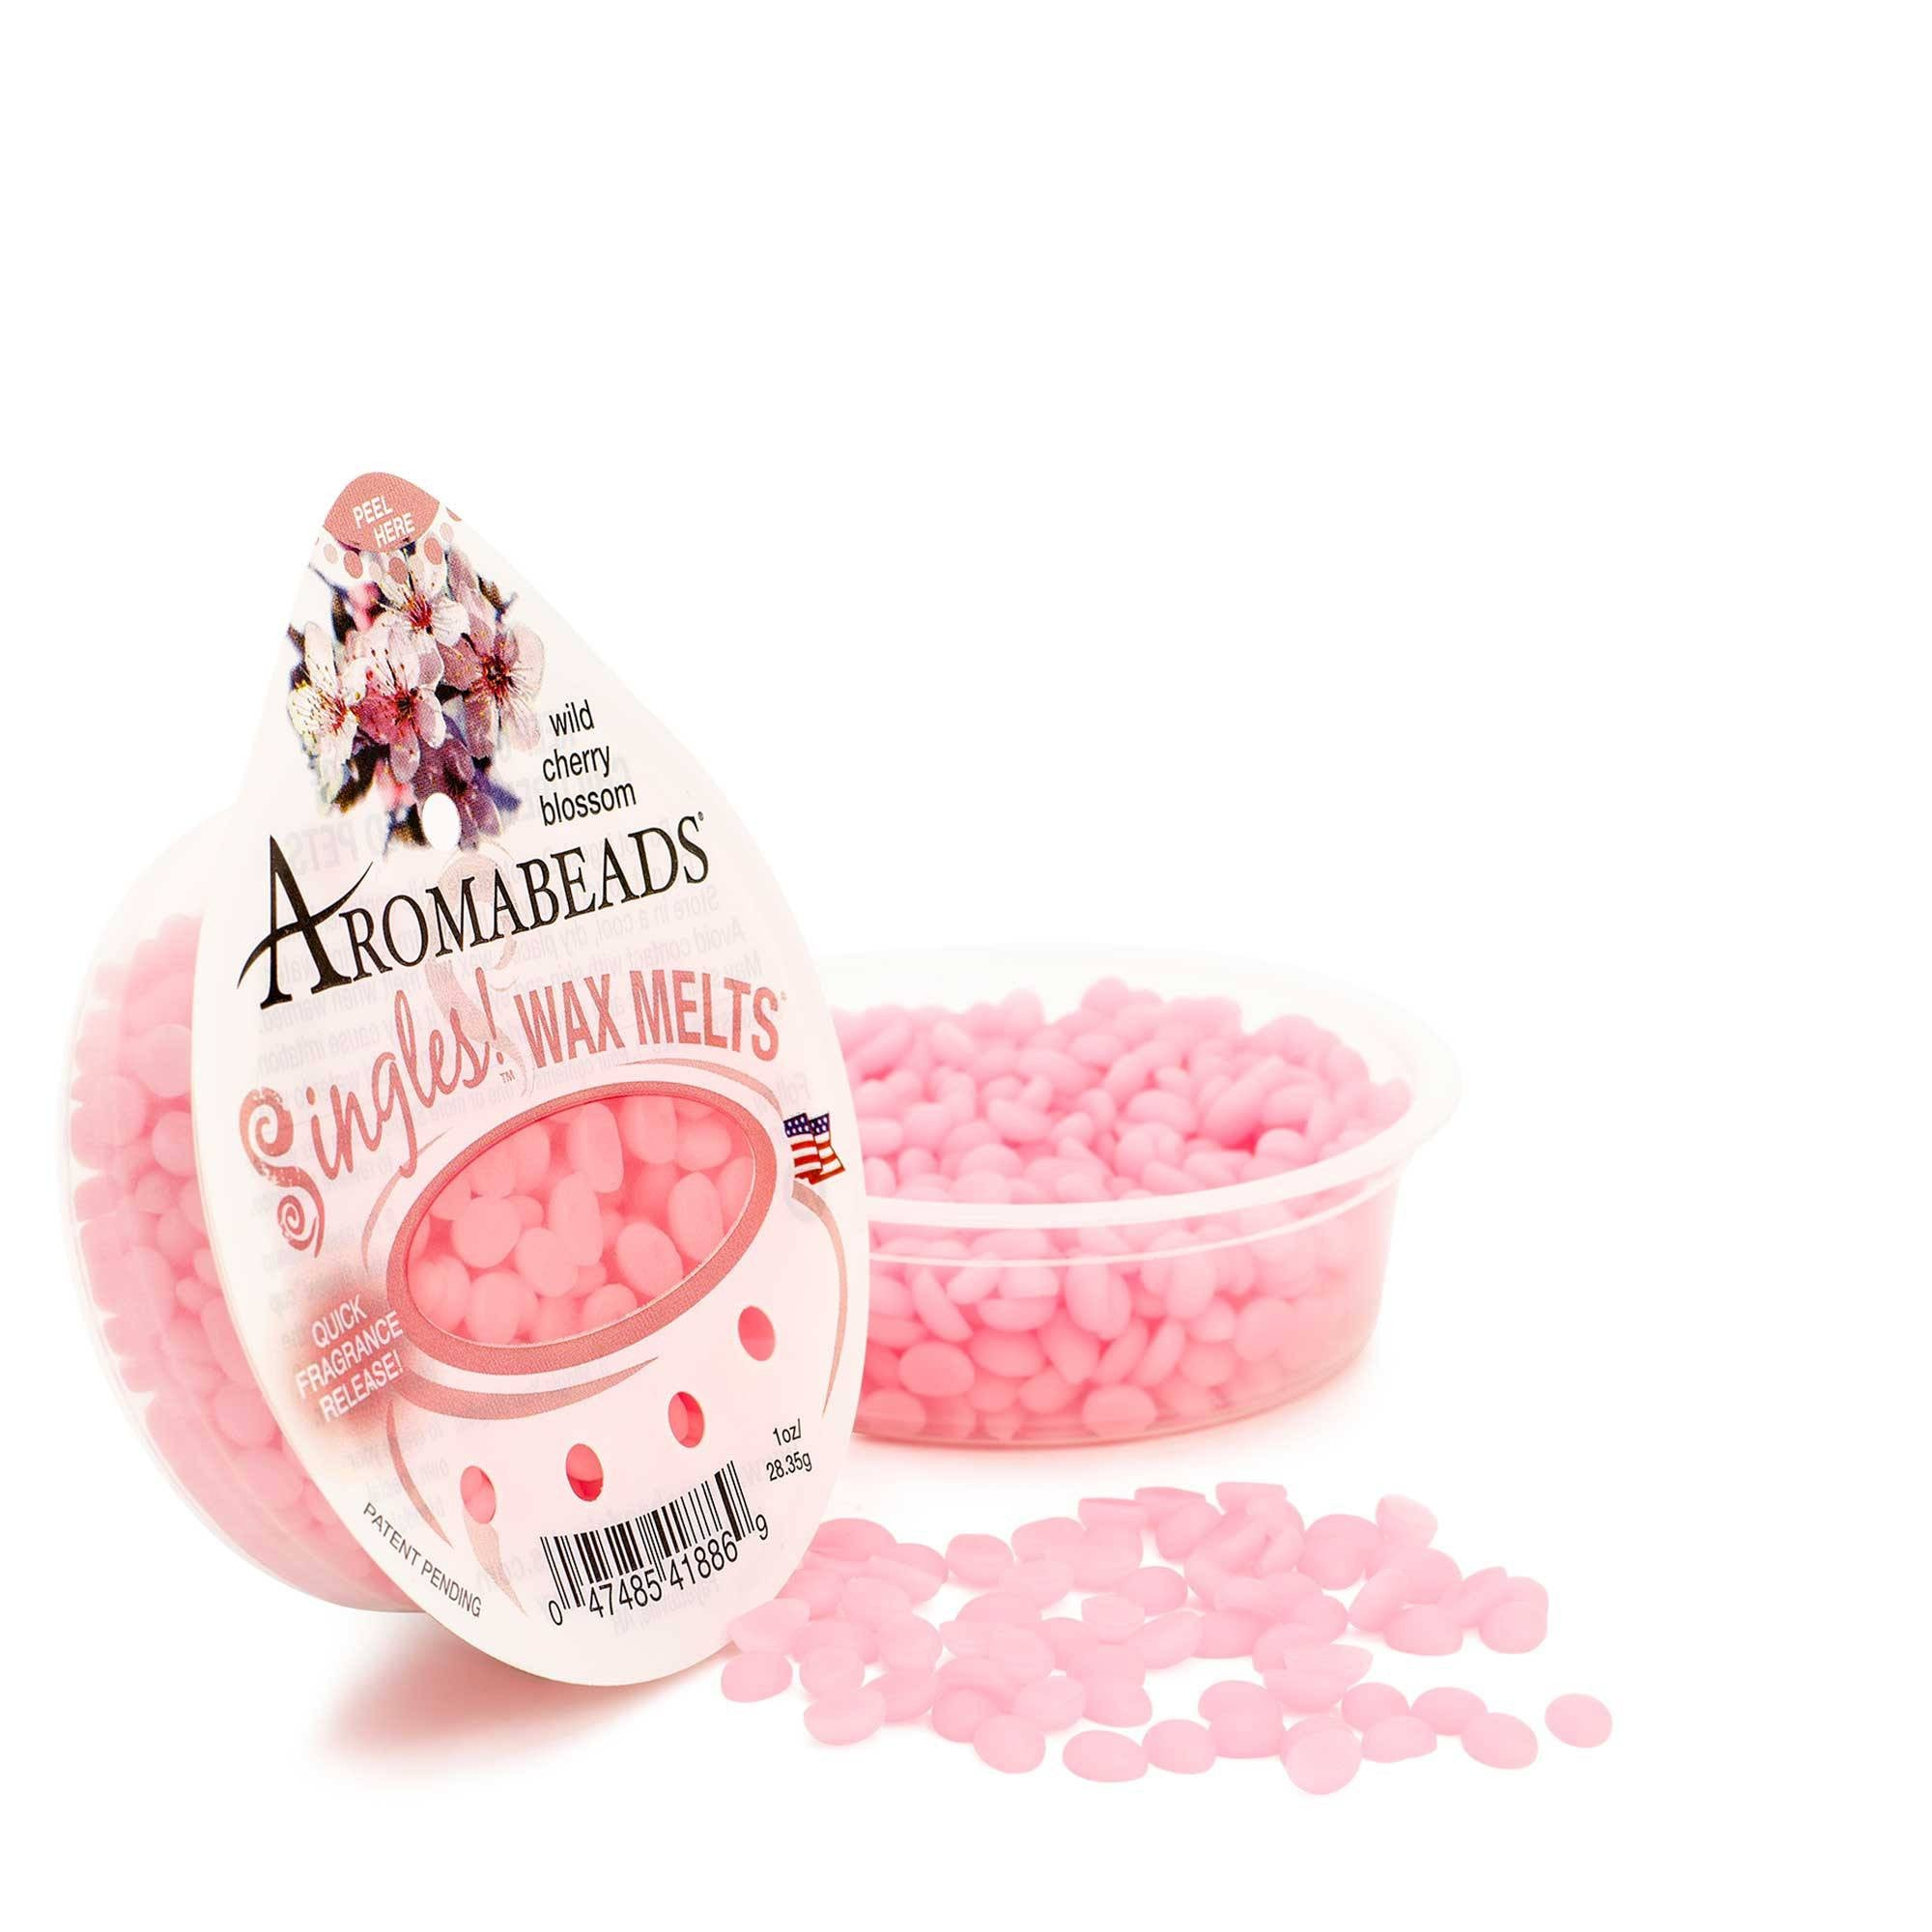 Aromabeads Singles Wild Cherry Blossom Scented Wax Melts - Candlemart.com - 1